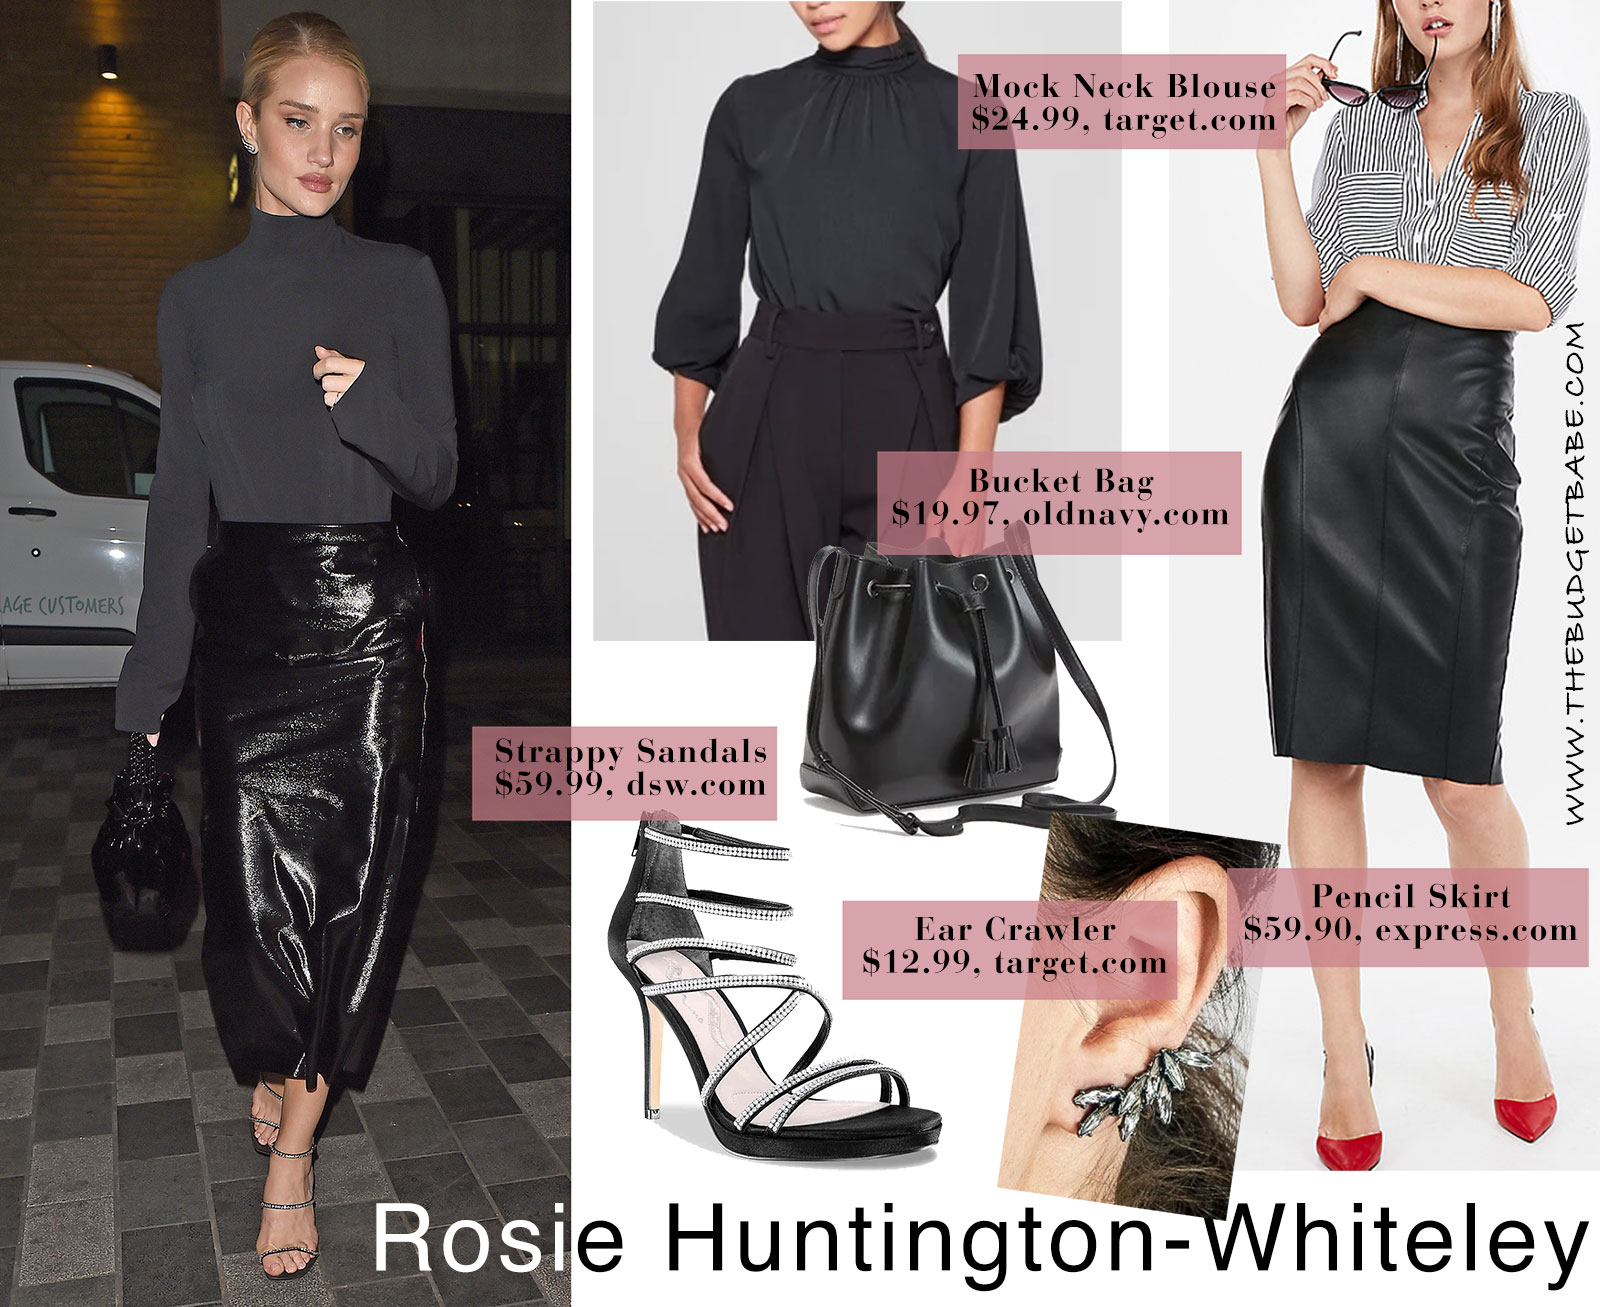 Rosie Huntington-Whiteley's black pencil skirt and bucket bag look for less